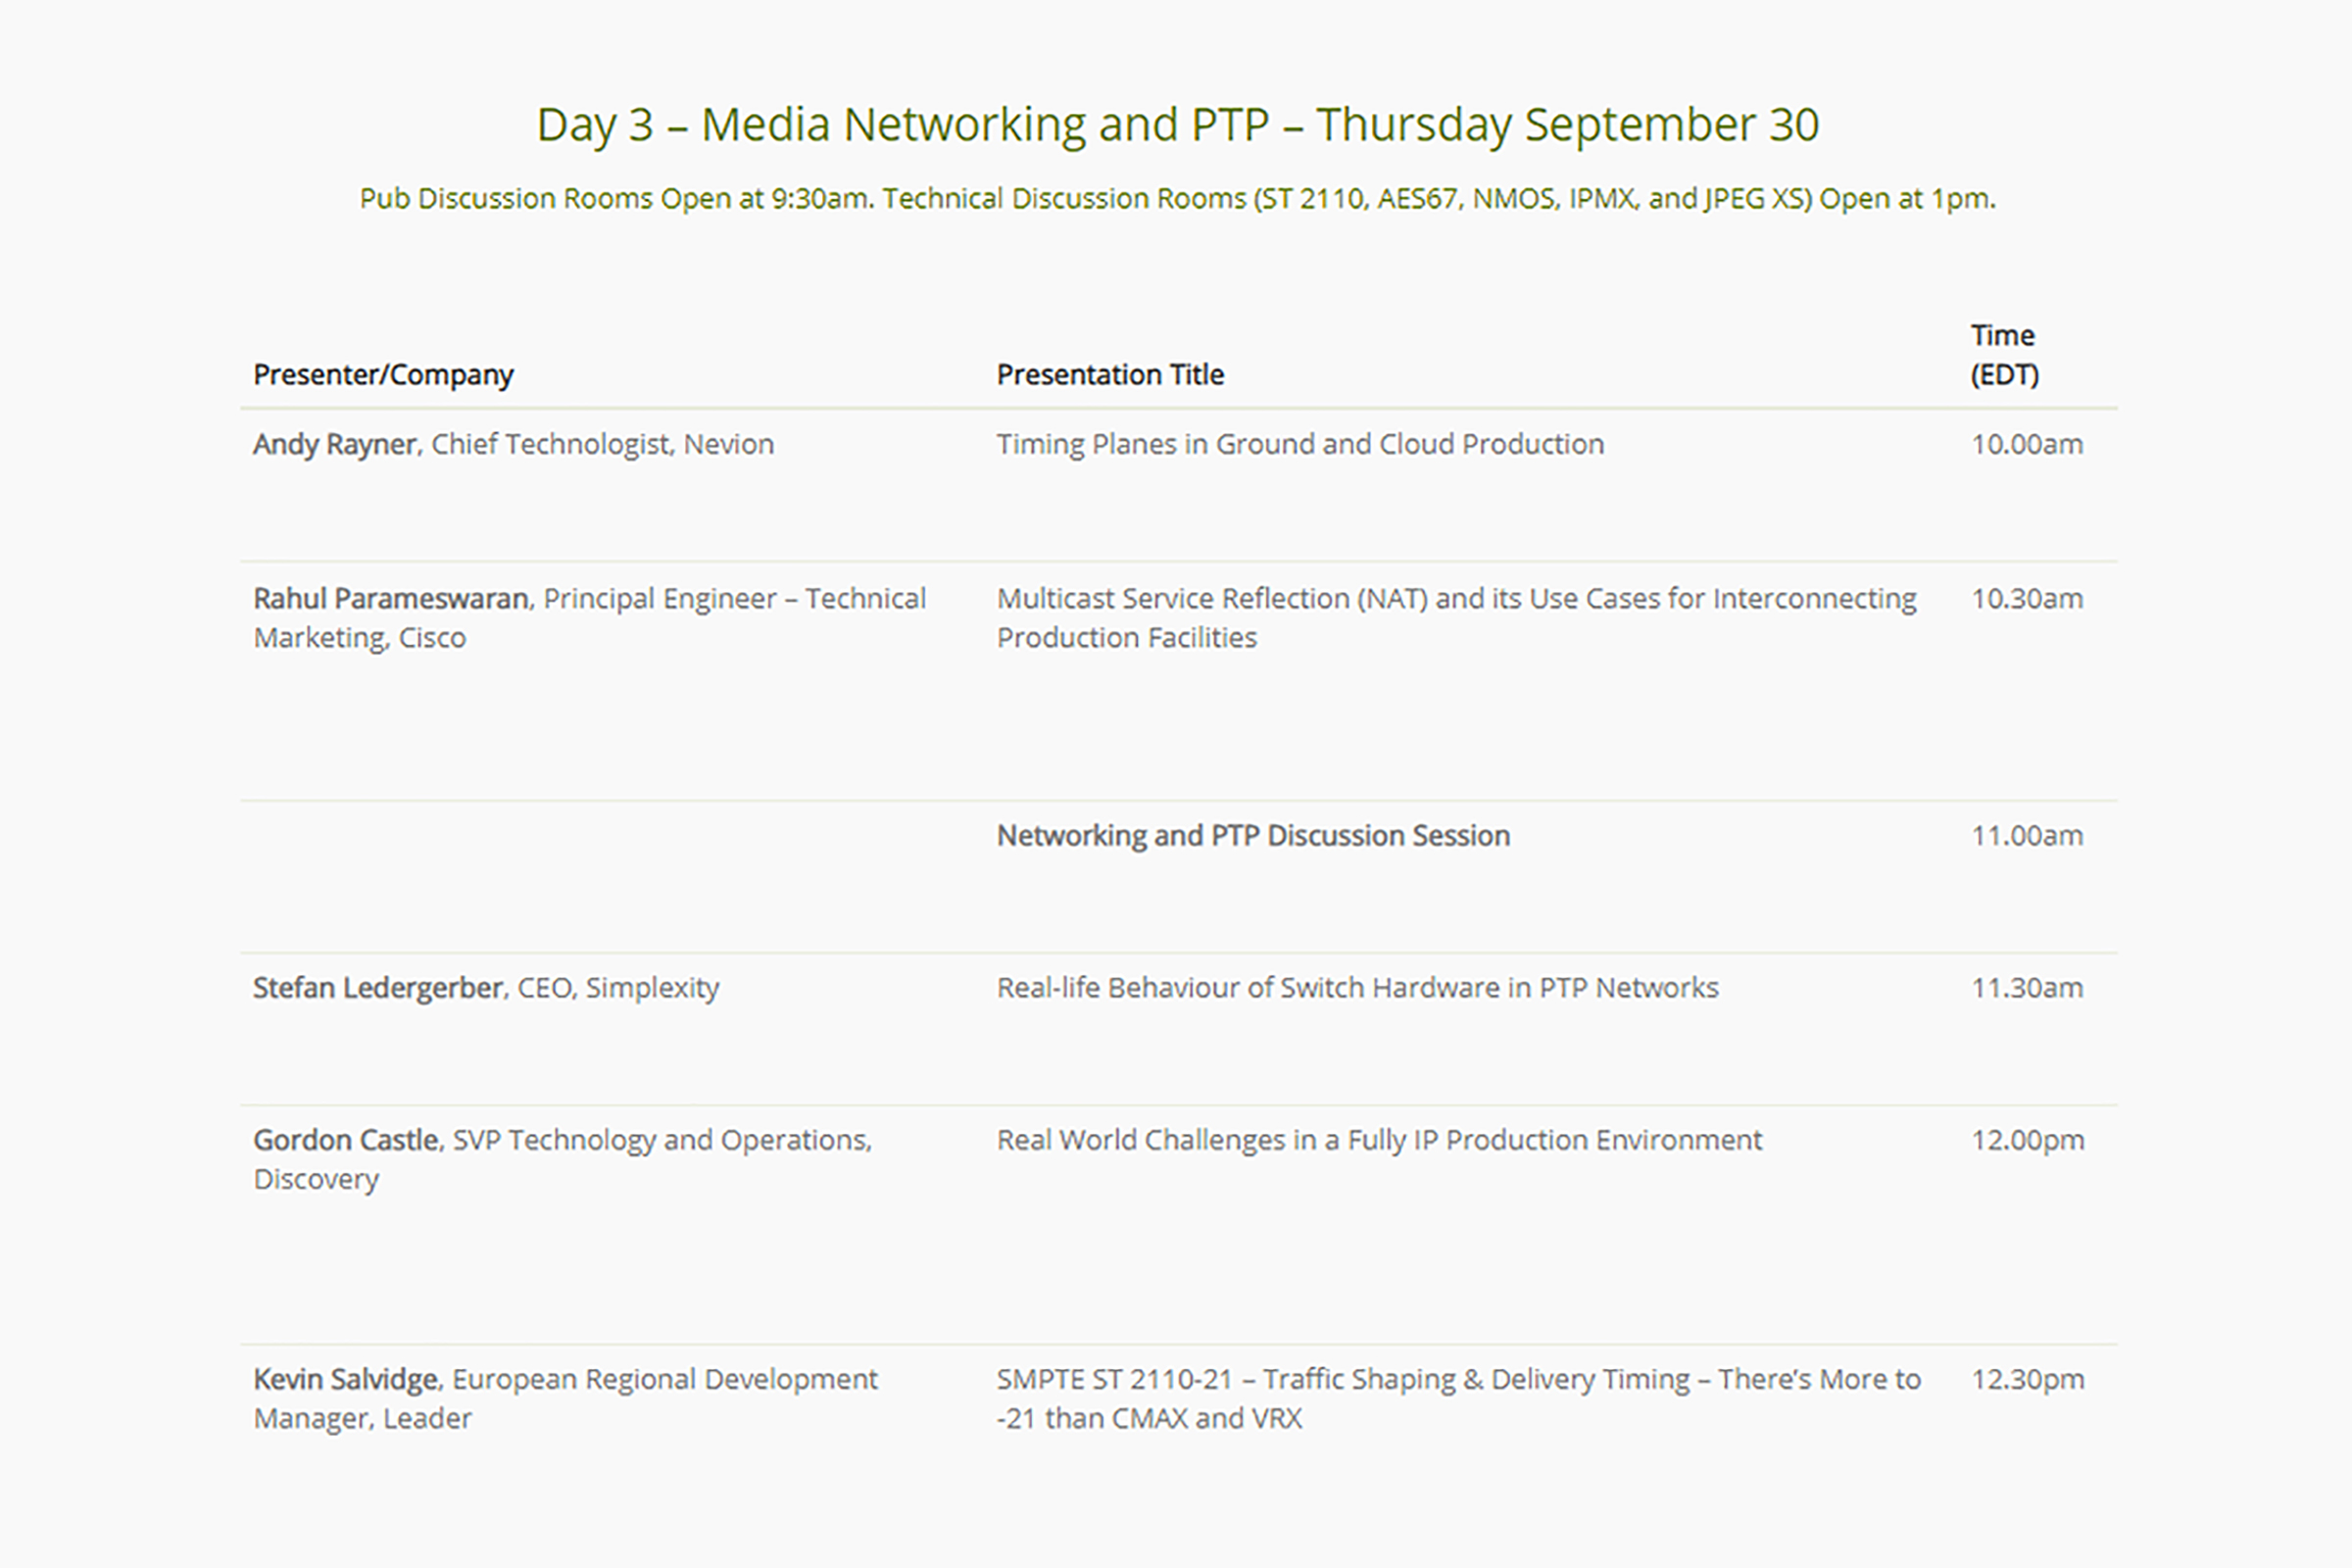 The Alliance for IP Media Solutions (AIMS) IP Oktoberfest 2021 day 3 speaker lineup and presentation schedule